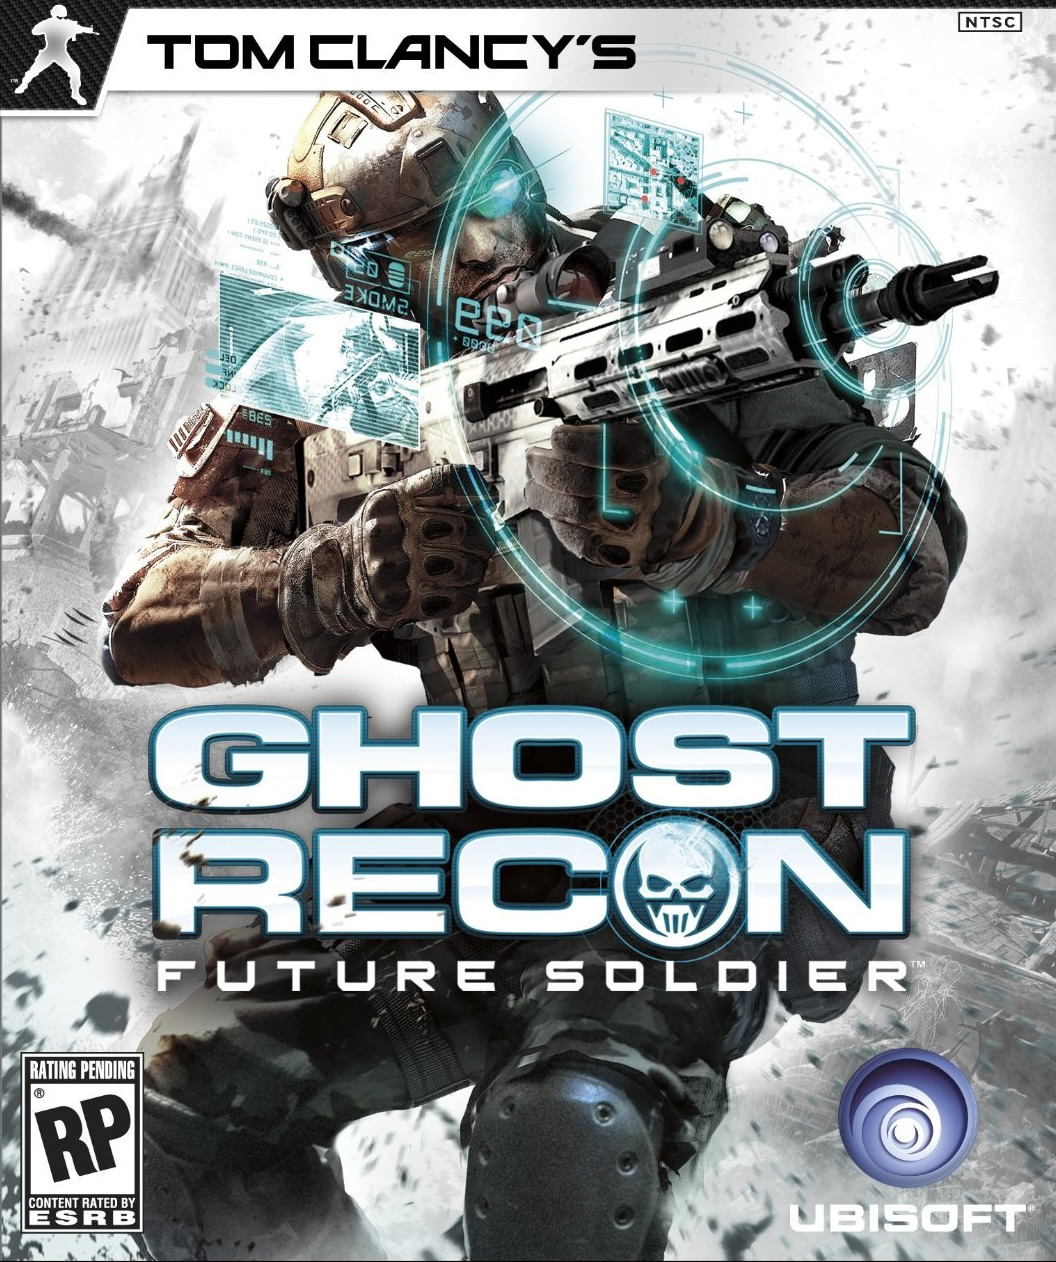 Tom Clancy's Ghost Recon: Future Soldier Boxart